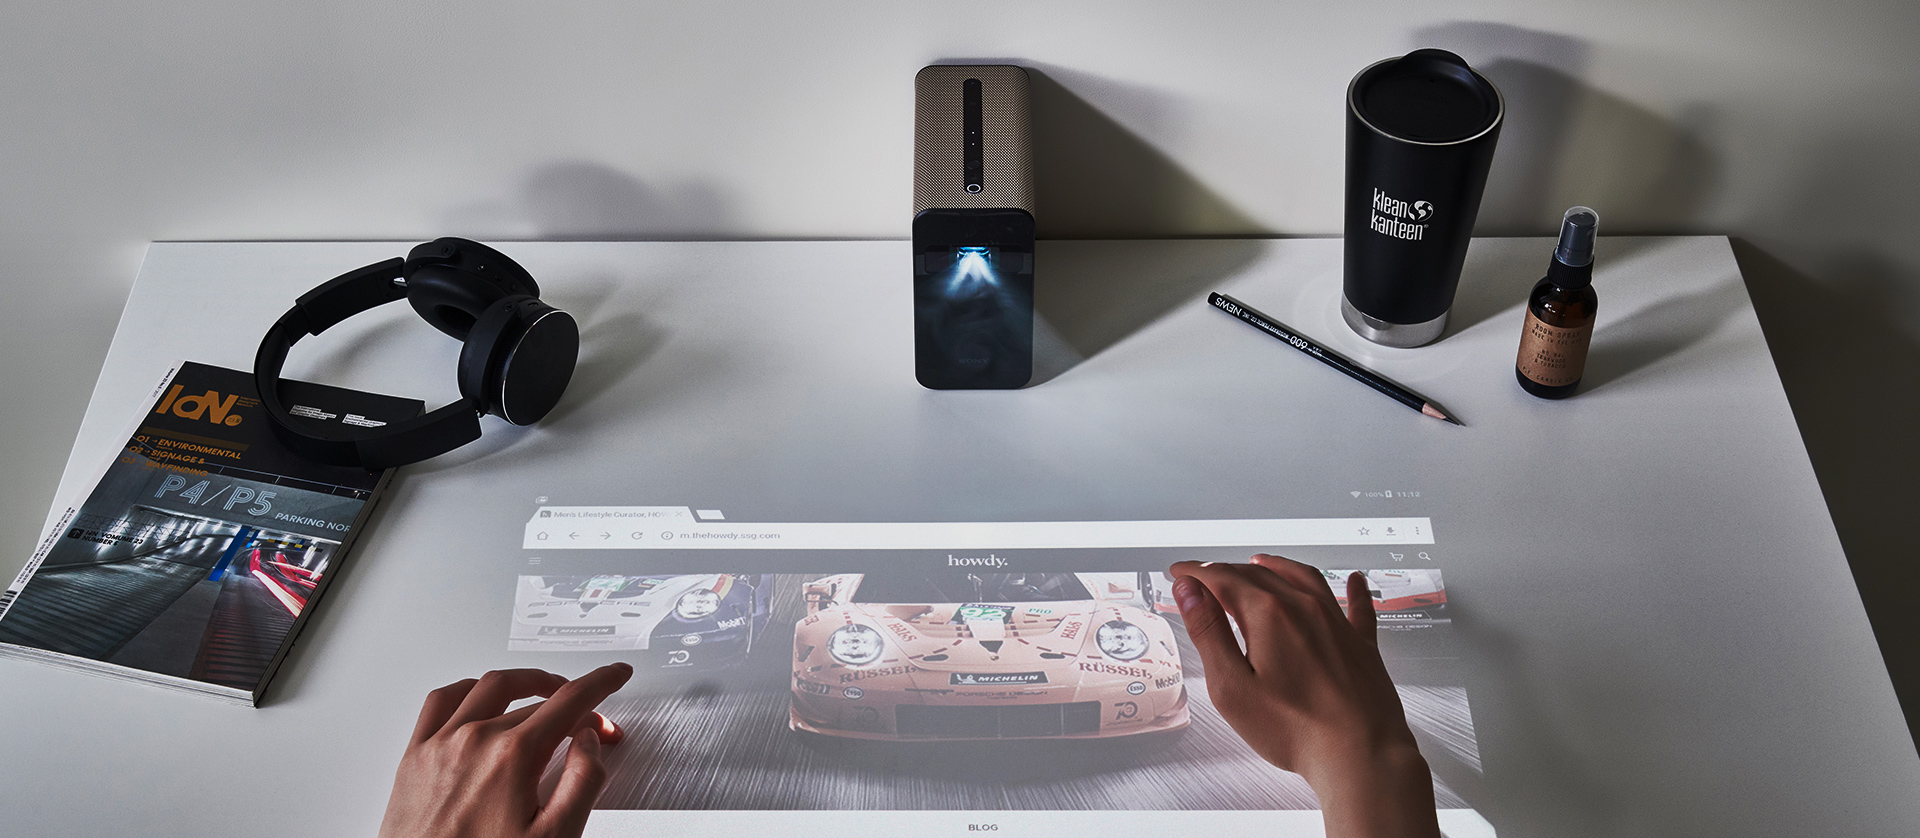 SONY XPERIA TOUCH 리뷰